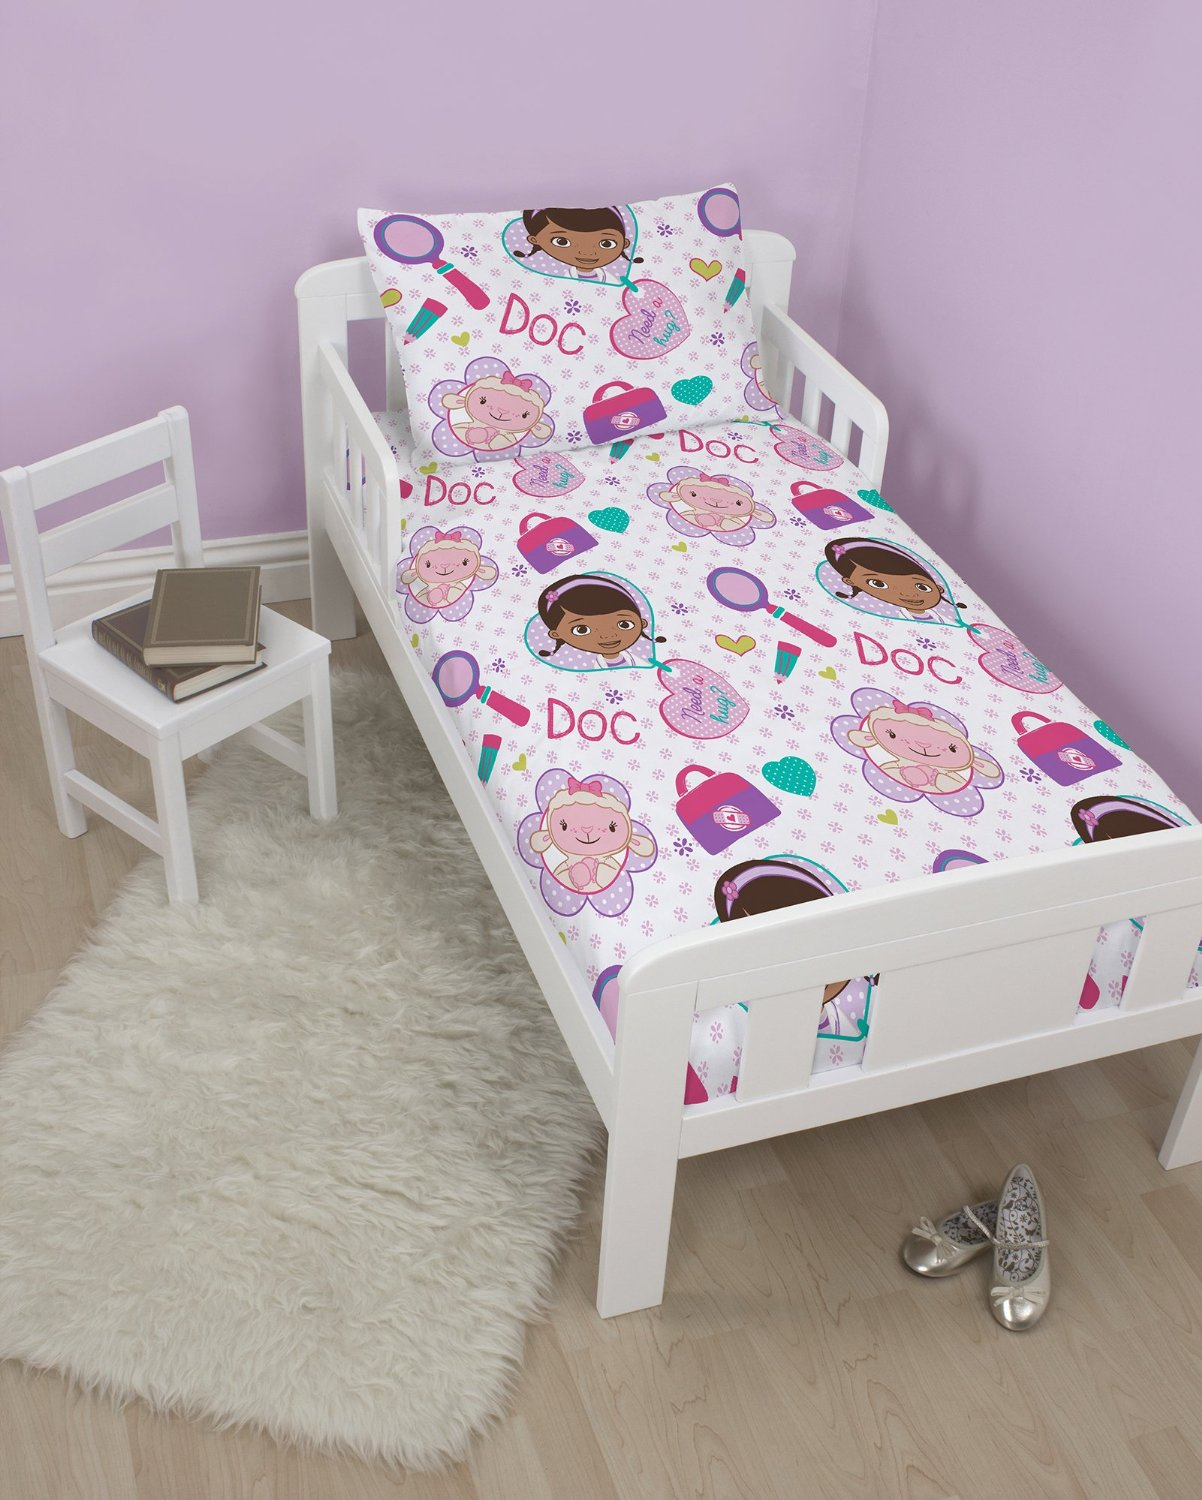 docteur la peluche doc mcstuffins set 4 en 1 housse de couette 120 x 150 cm taie. Black Bedroom Furniture Sets. Home Design Ideas